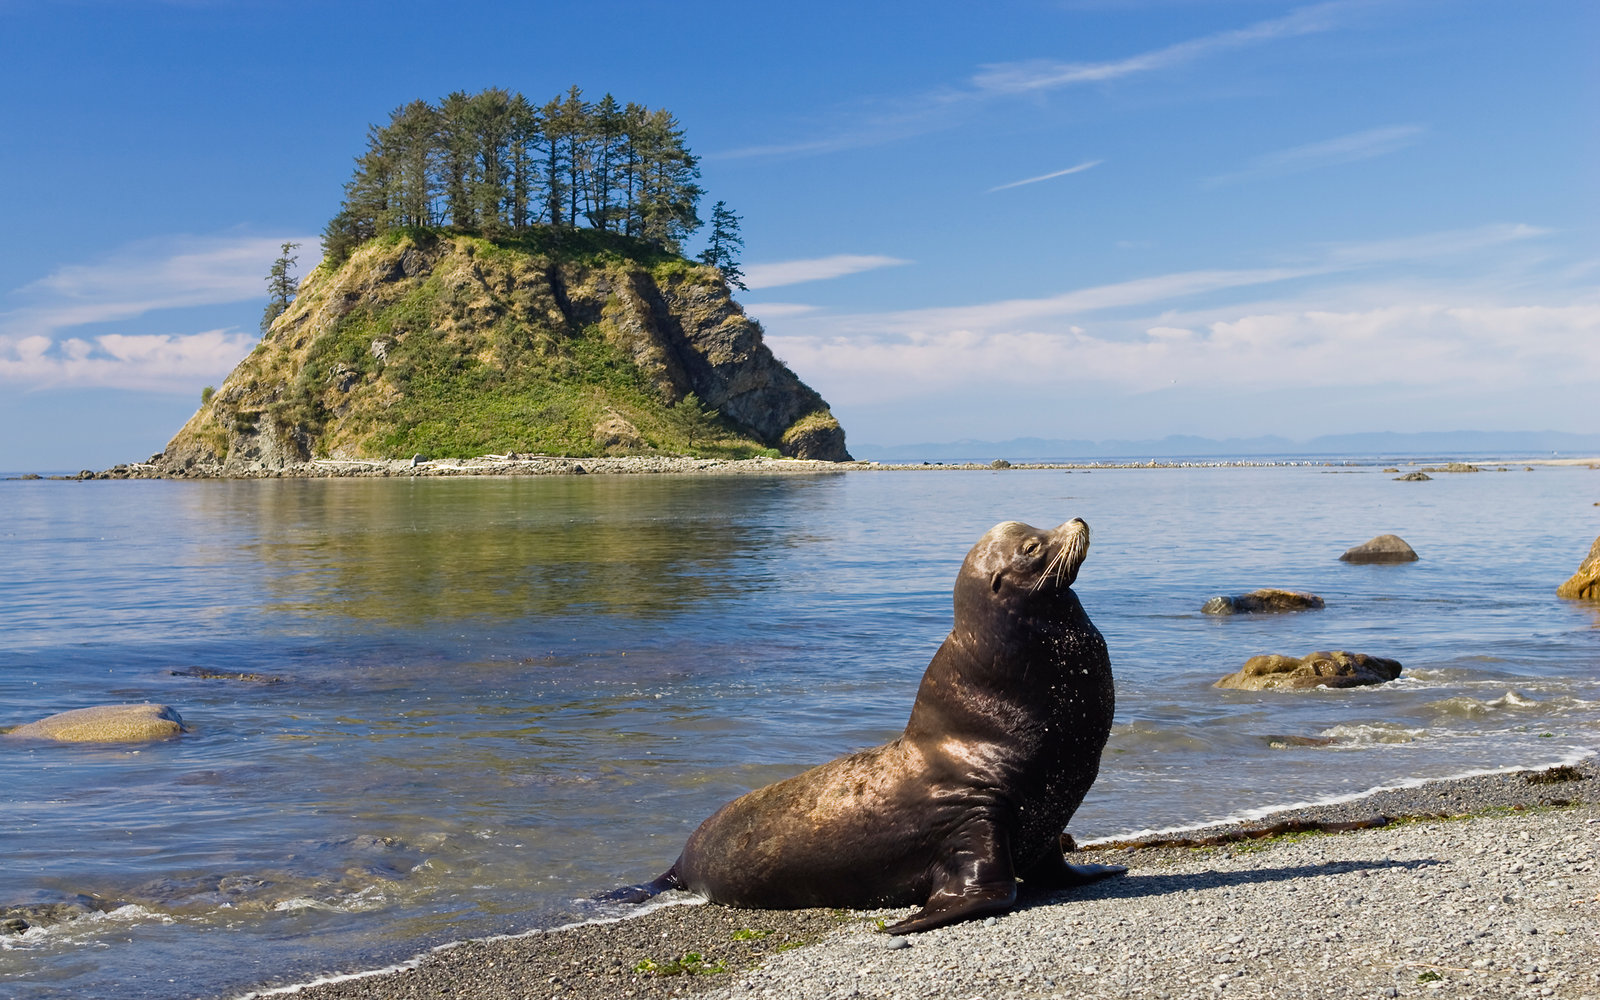 California Sea Lion at Cape Alava, Olympic National Park, Washington